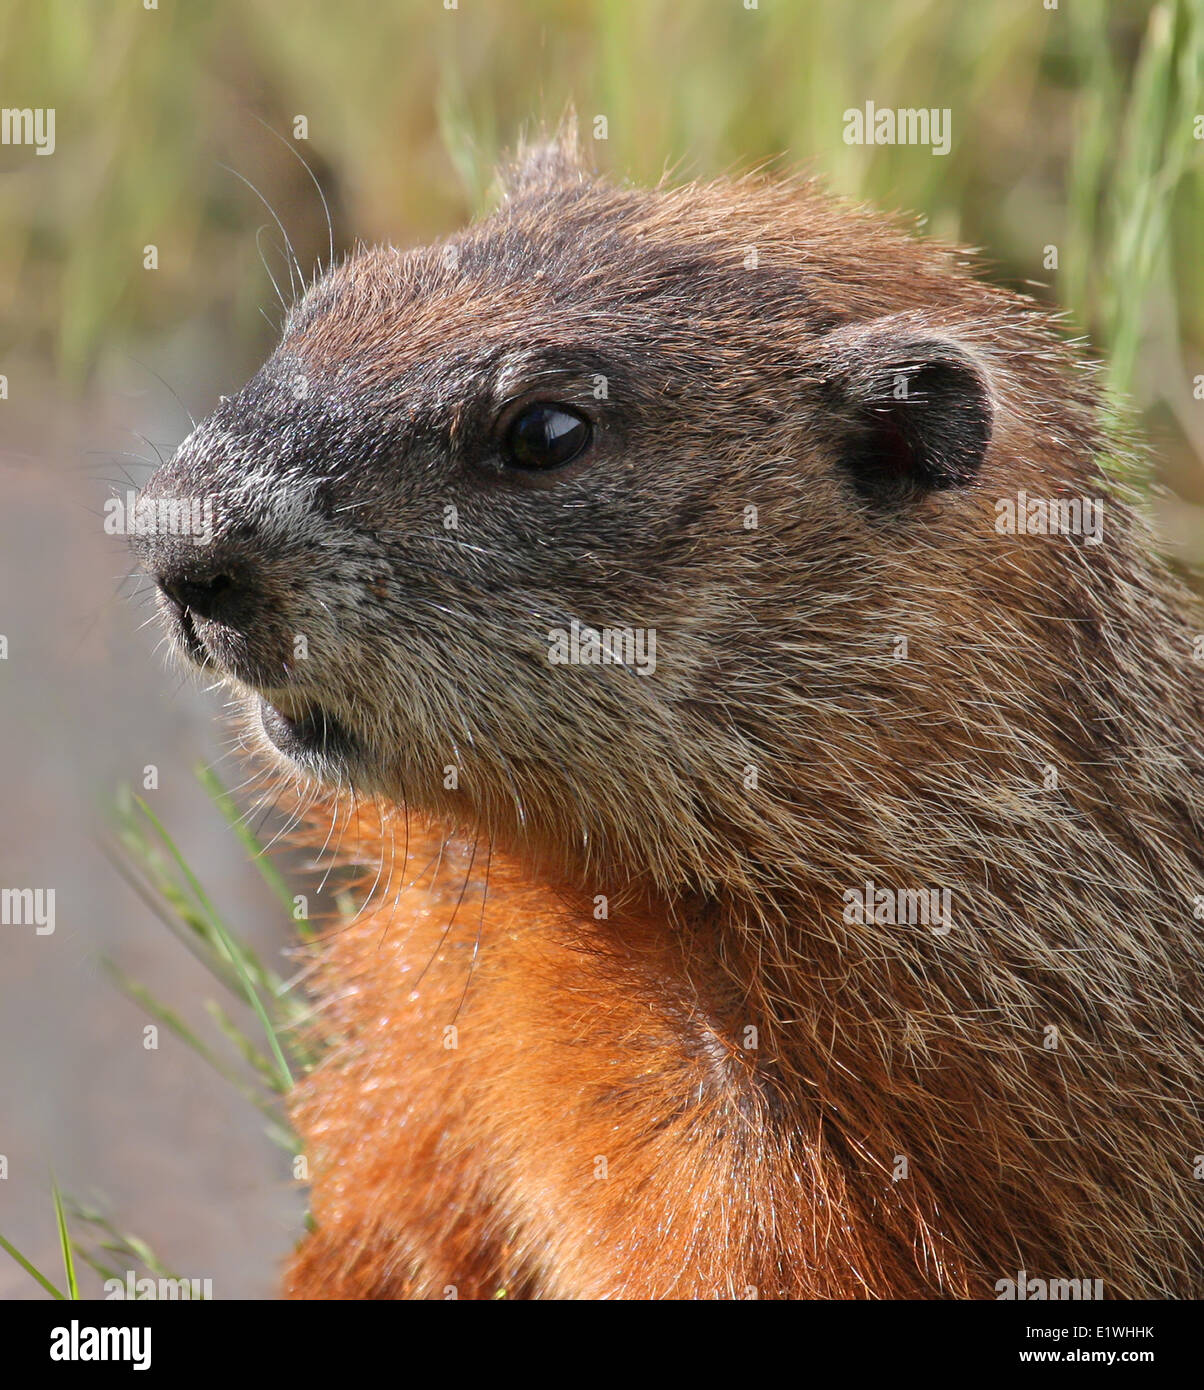 Woodchuck (Marmota monax), at Beauval in Saskatchewan - Stock Image